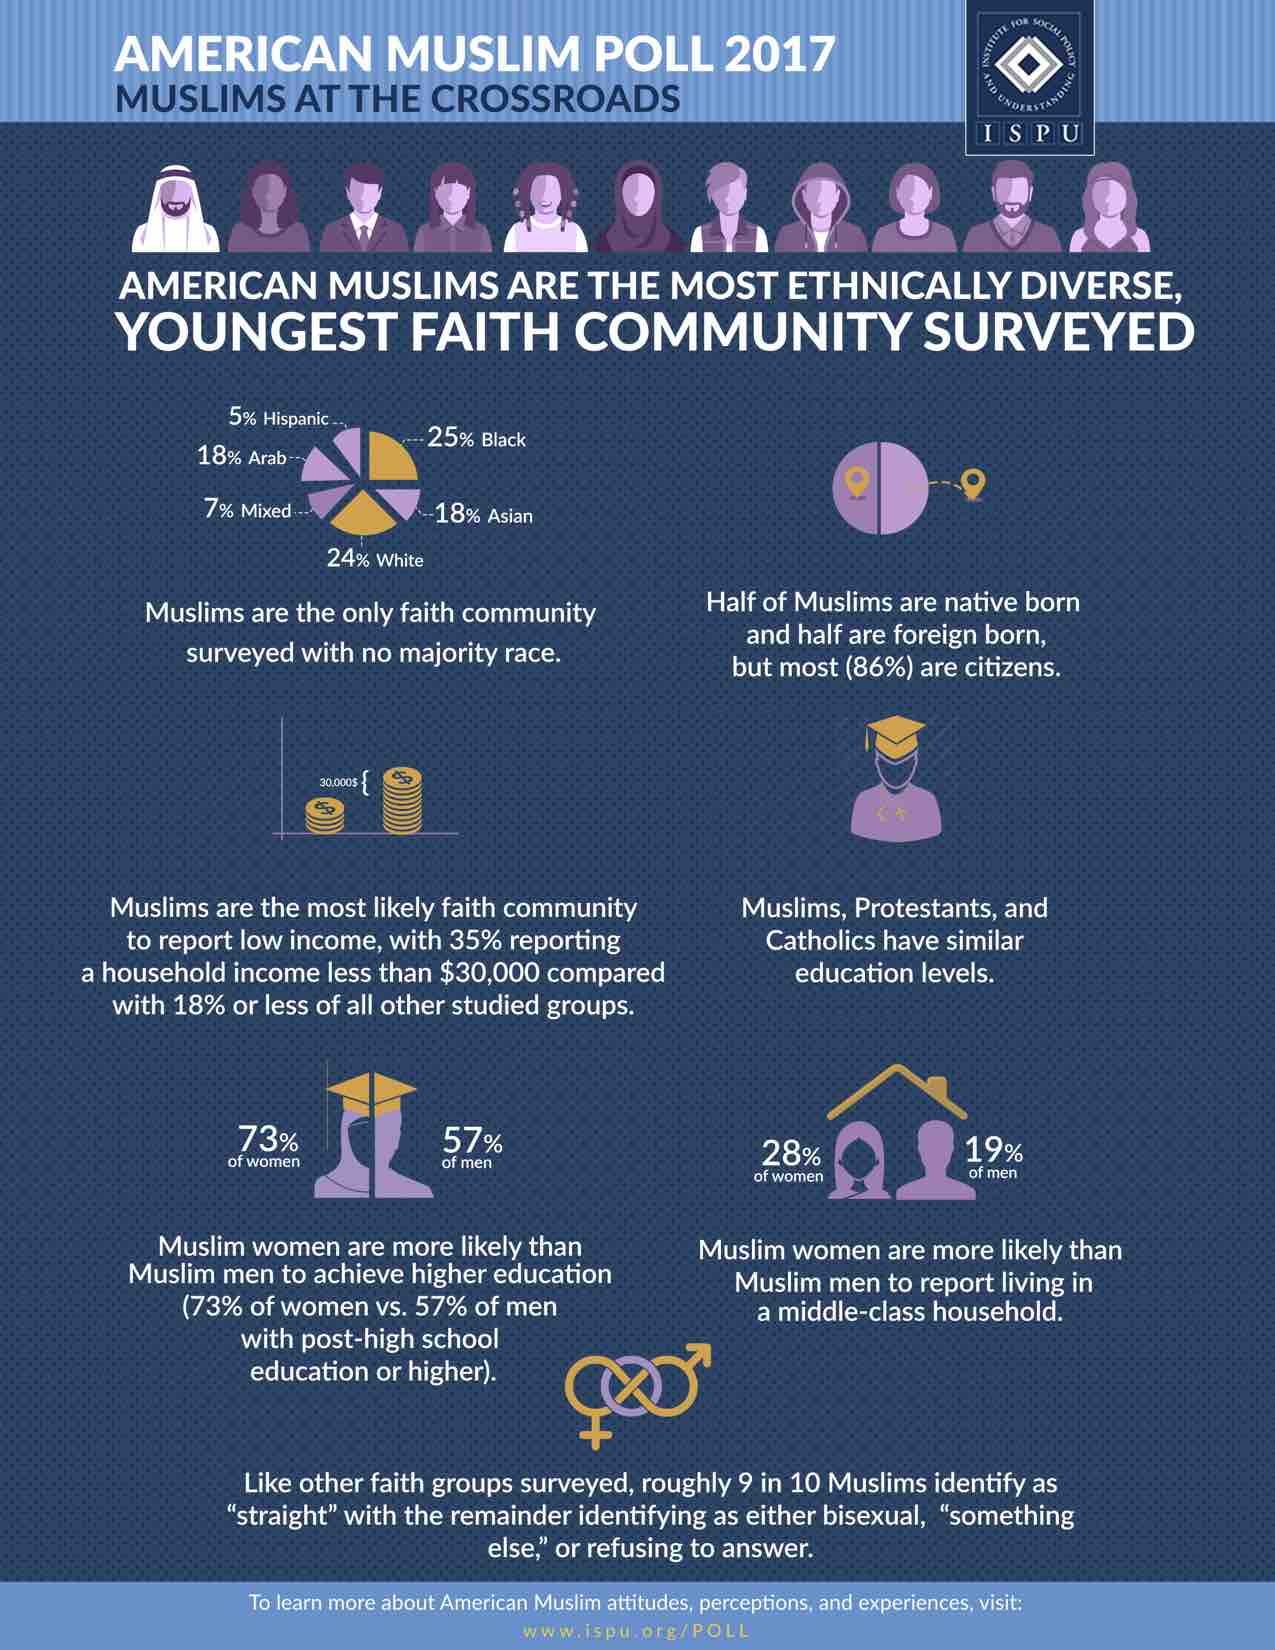 Infographic showing American Muslims Are the Most Ethnically Diverse, Youngest Faith Community Surveyed